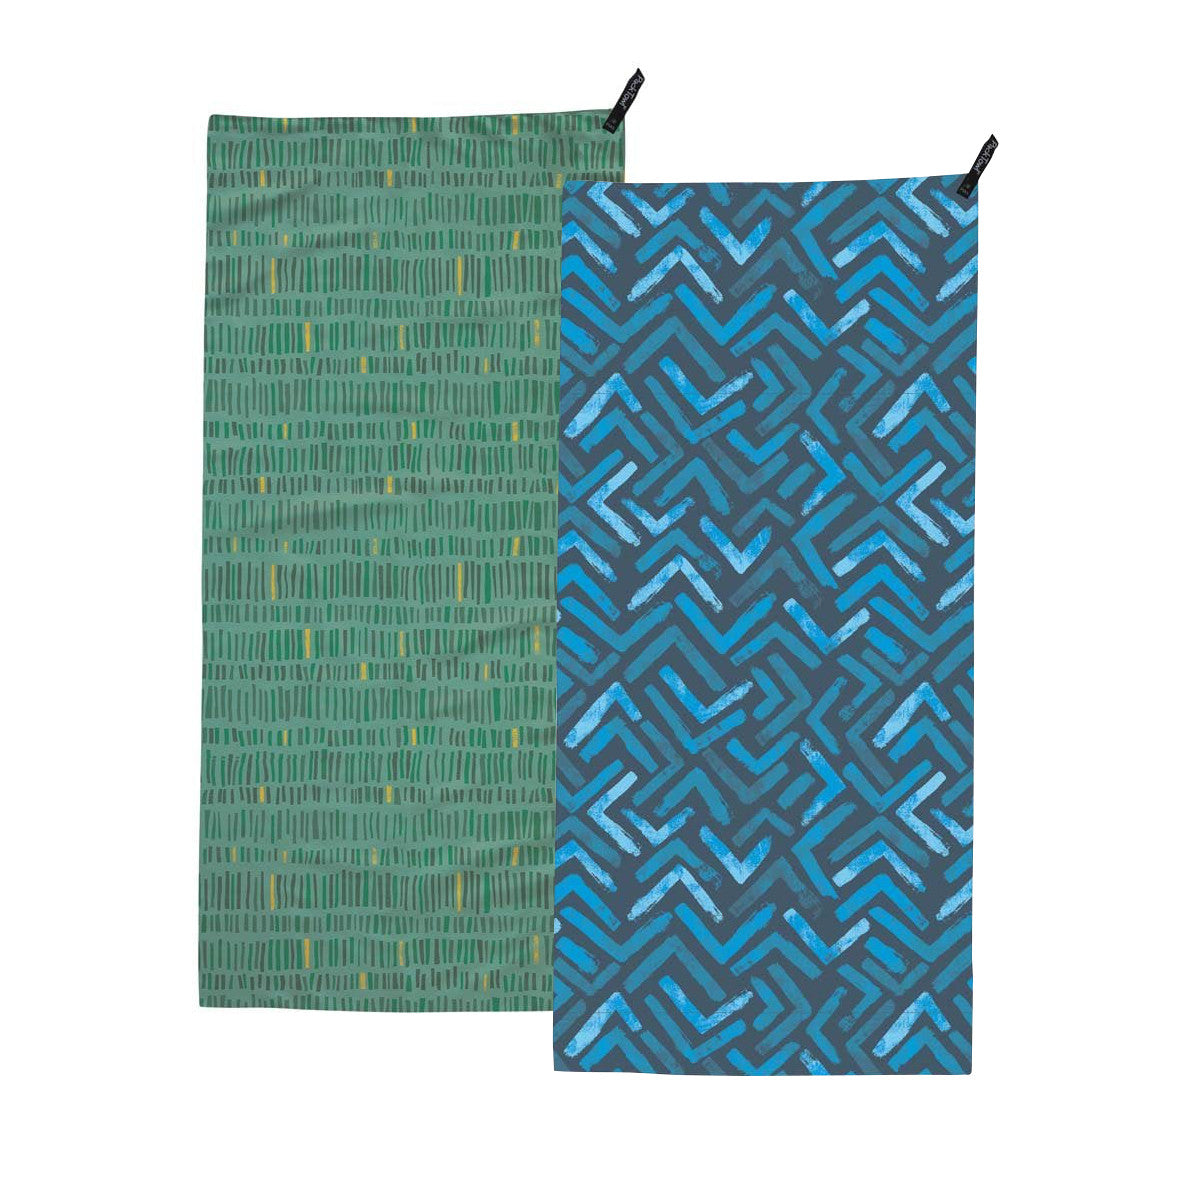 Packtowl UltraLite (Face) in green with pattern and blue with pattern